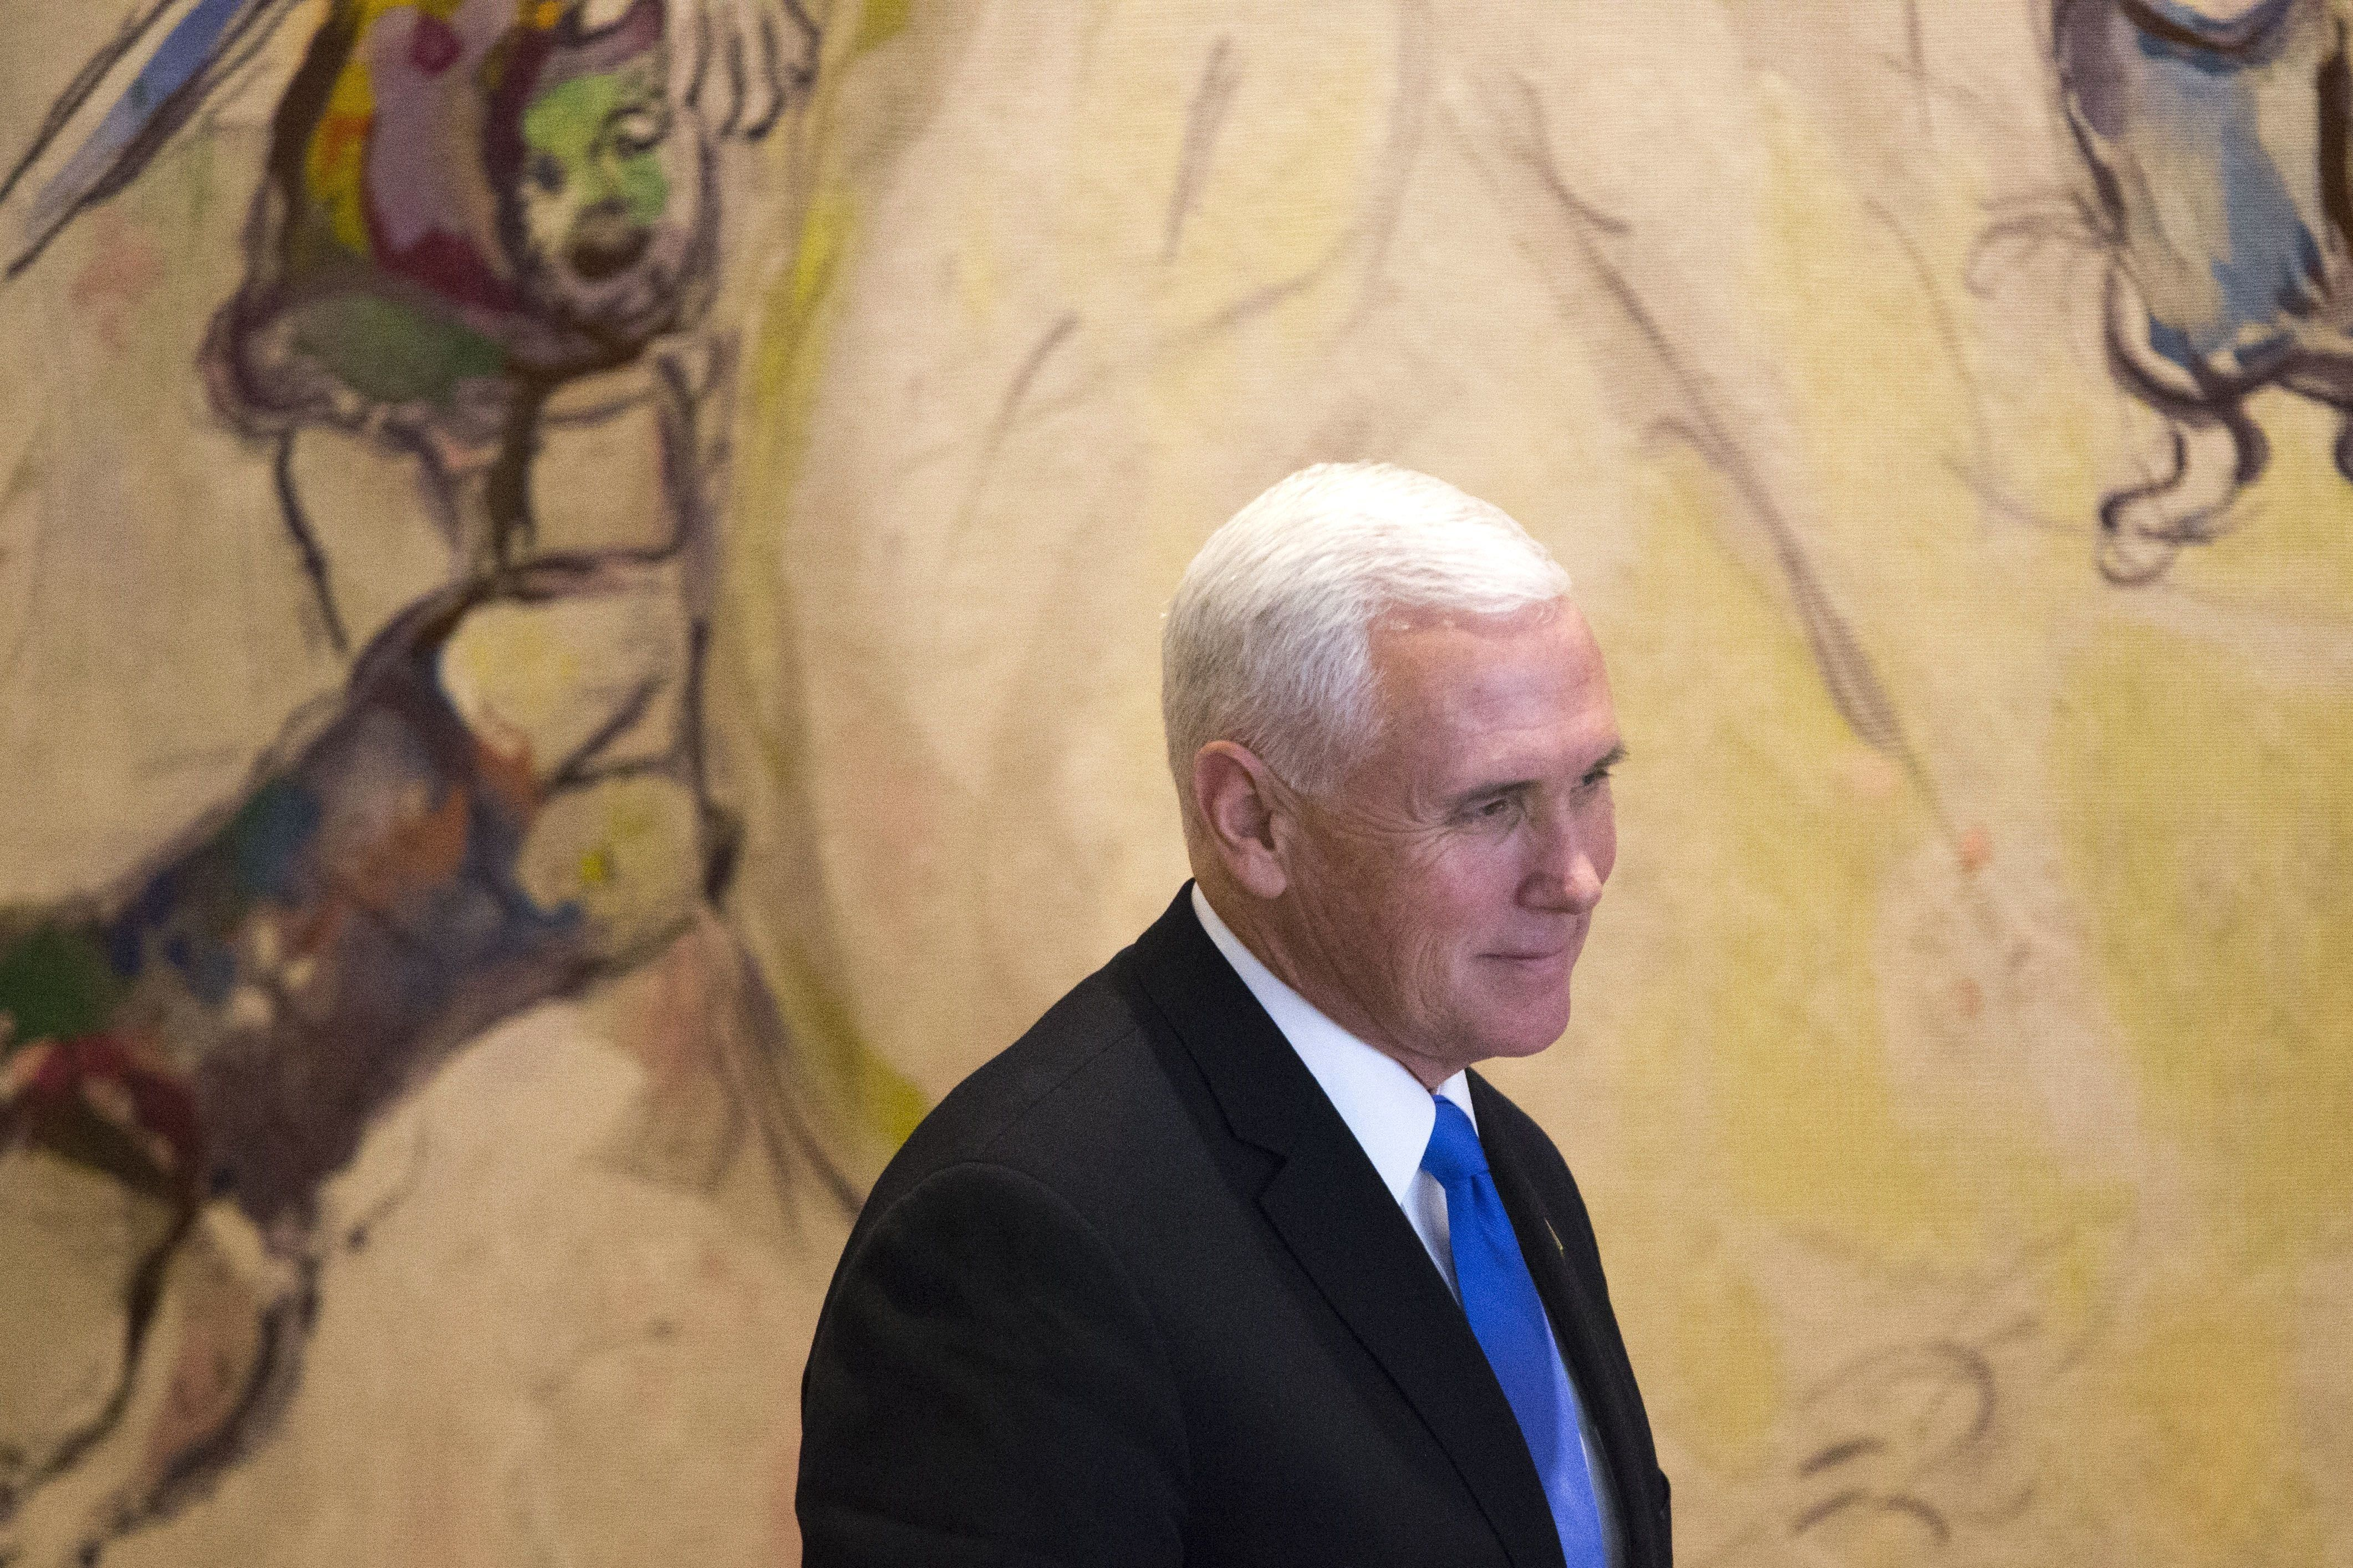 Jerusalem Embassy Move Will Happen Next Year, VP Pence Says